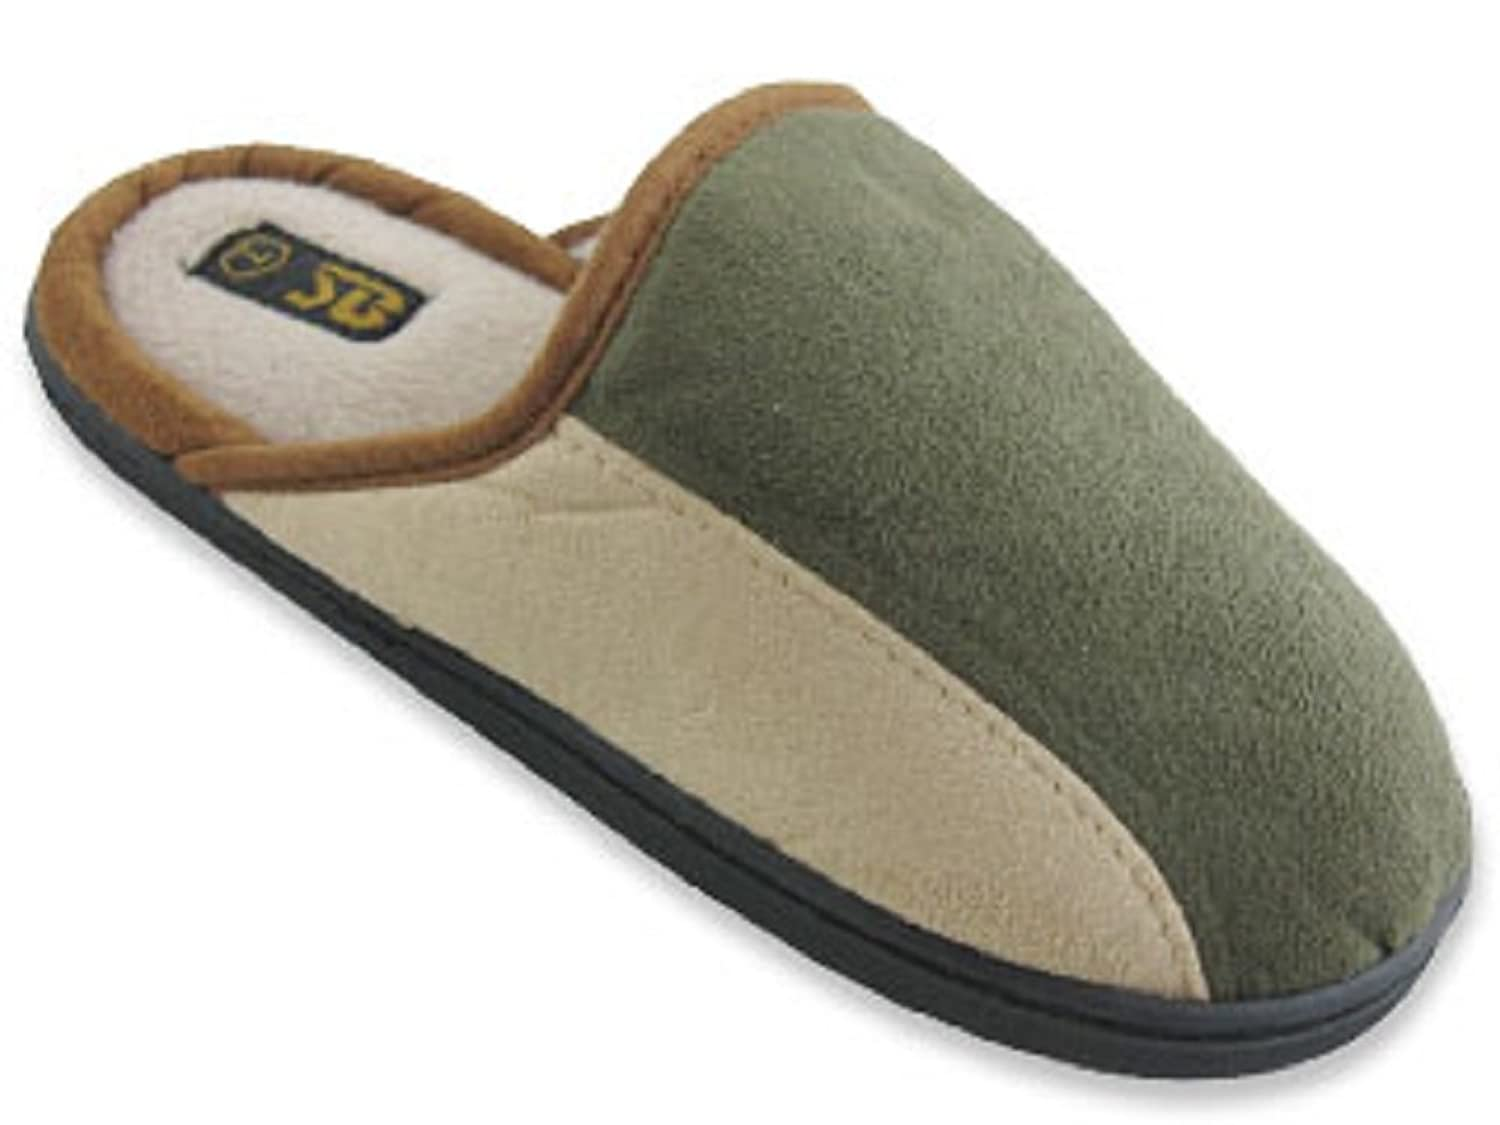 New Starbay Brand Men's Faux Suede Slide Slippers Available in 3 Colors